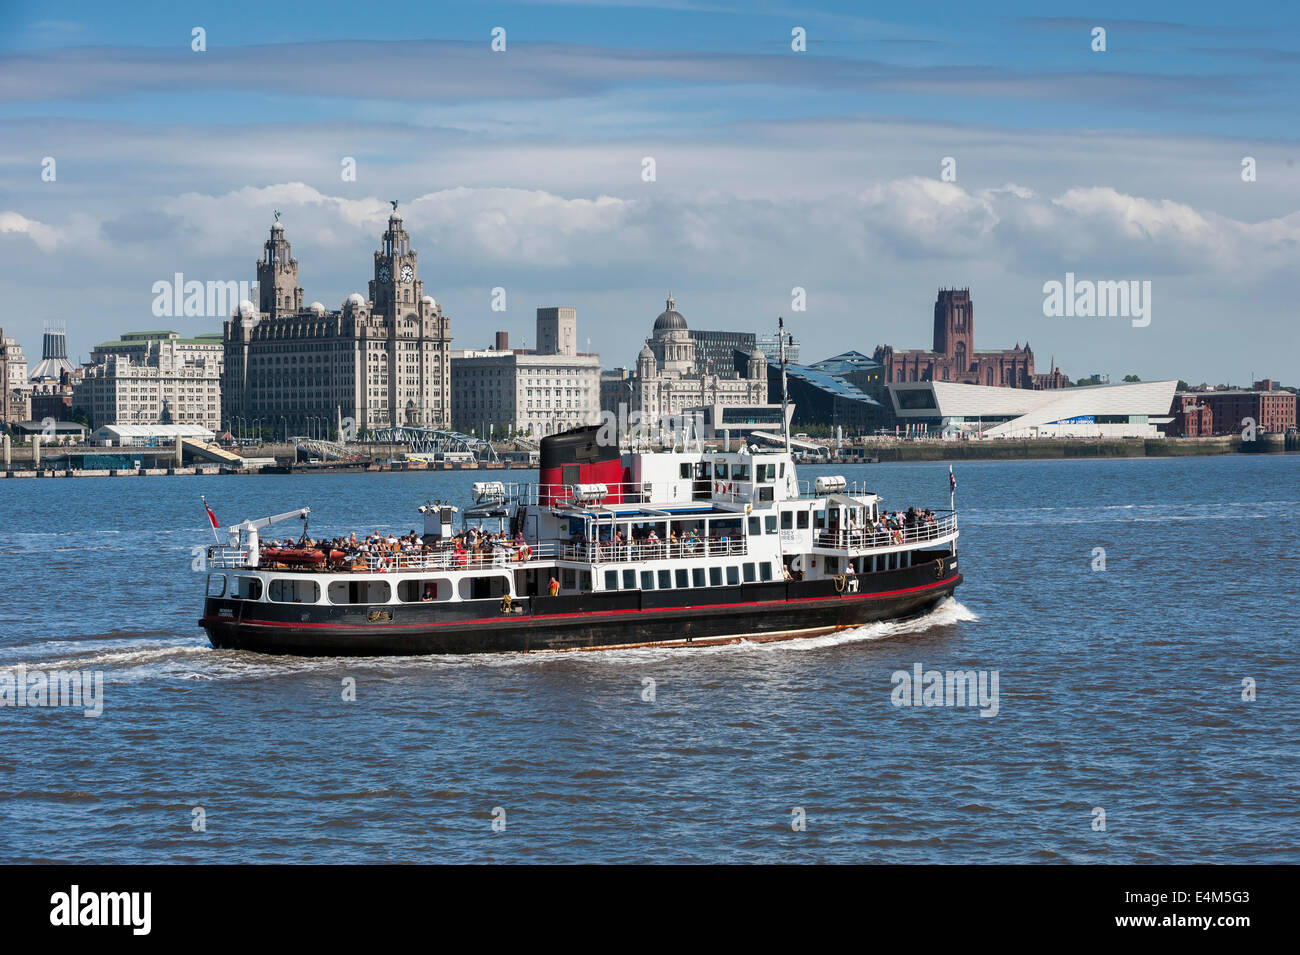 Mersey Ferry Crossing the River Mersey in Front of the Liver Building, Liverpool, Merseyside, England, UK - Stock Image